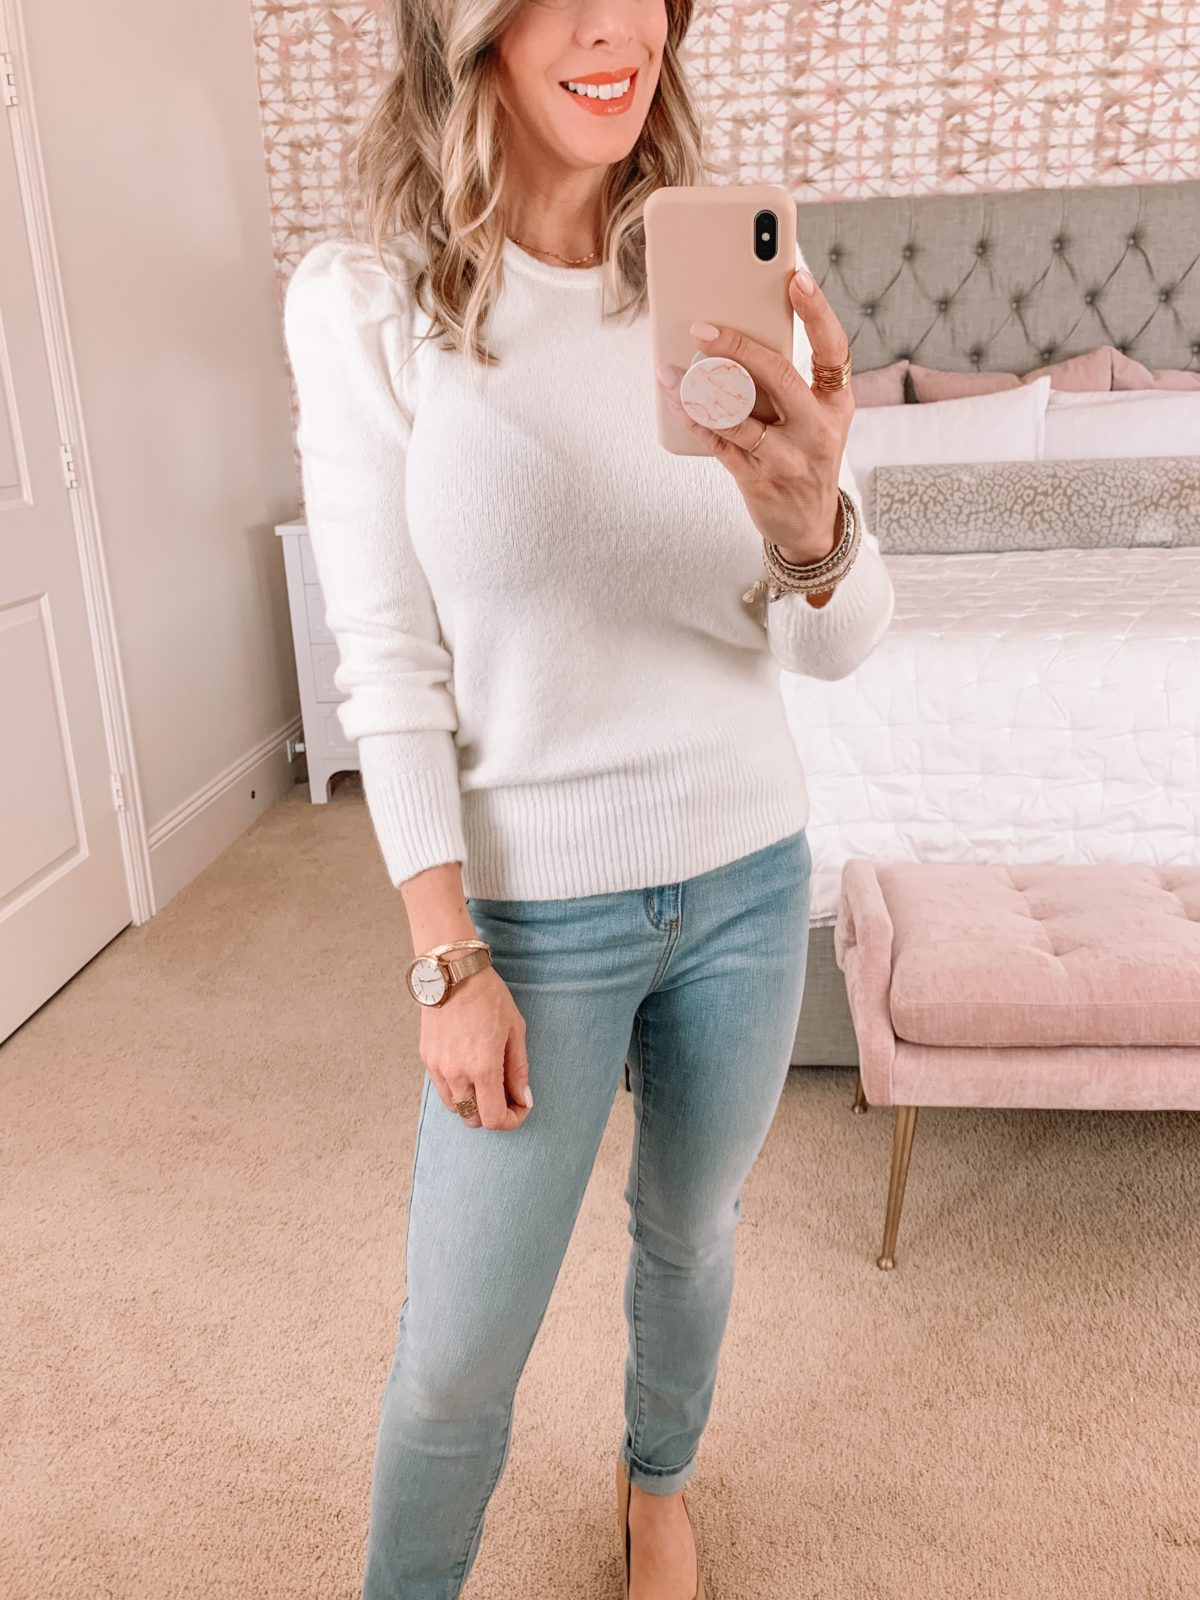 Amazon Fashion Faves, Puff Sleeve Sweater, Jeans